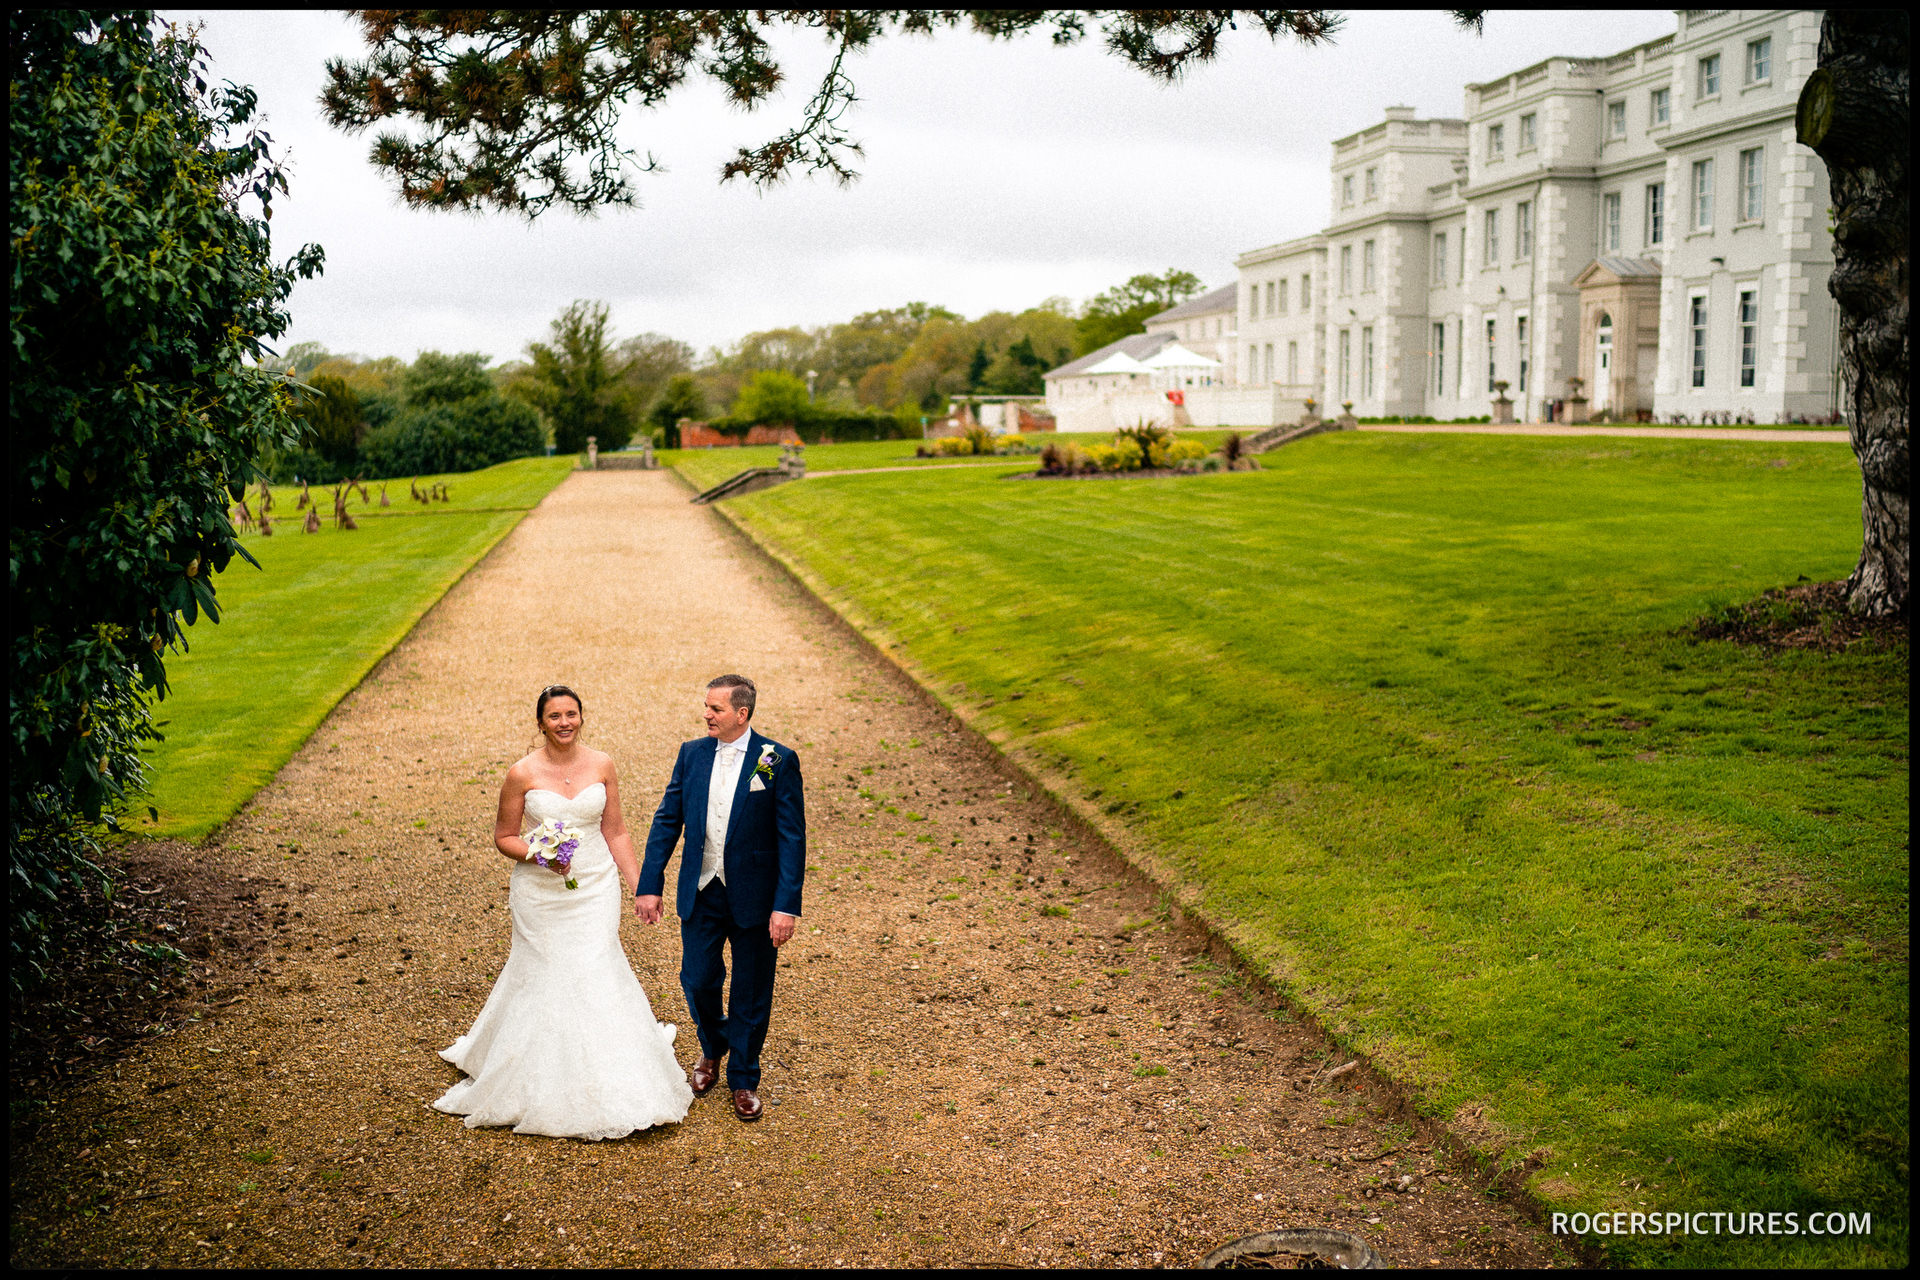 Wedding portraits at Wokefield Park hotel in Berkshire